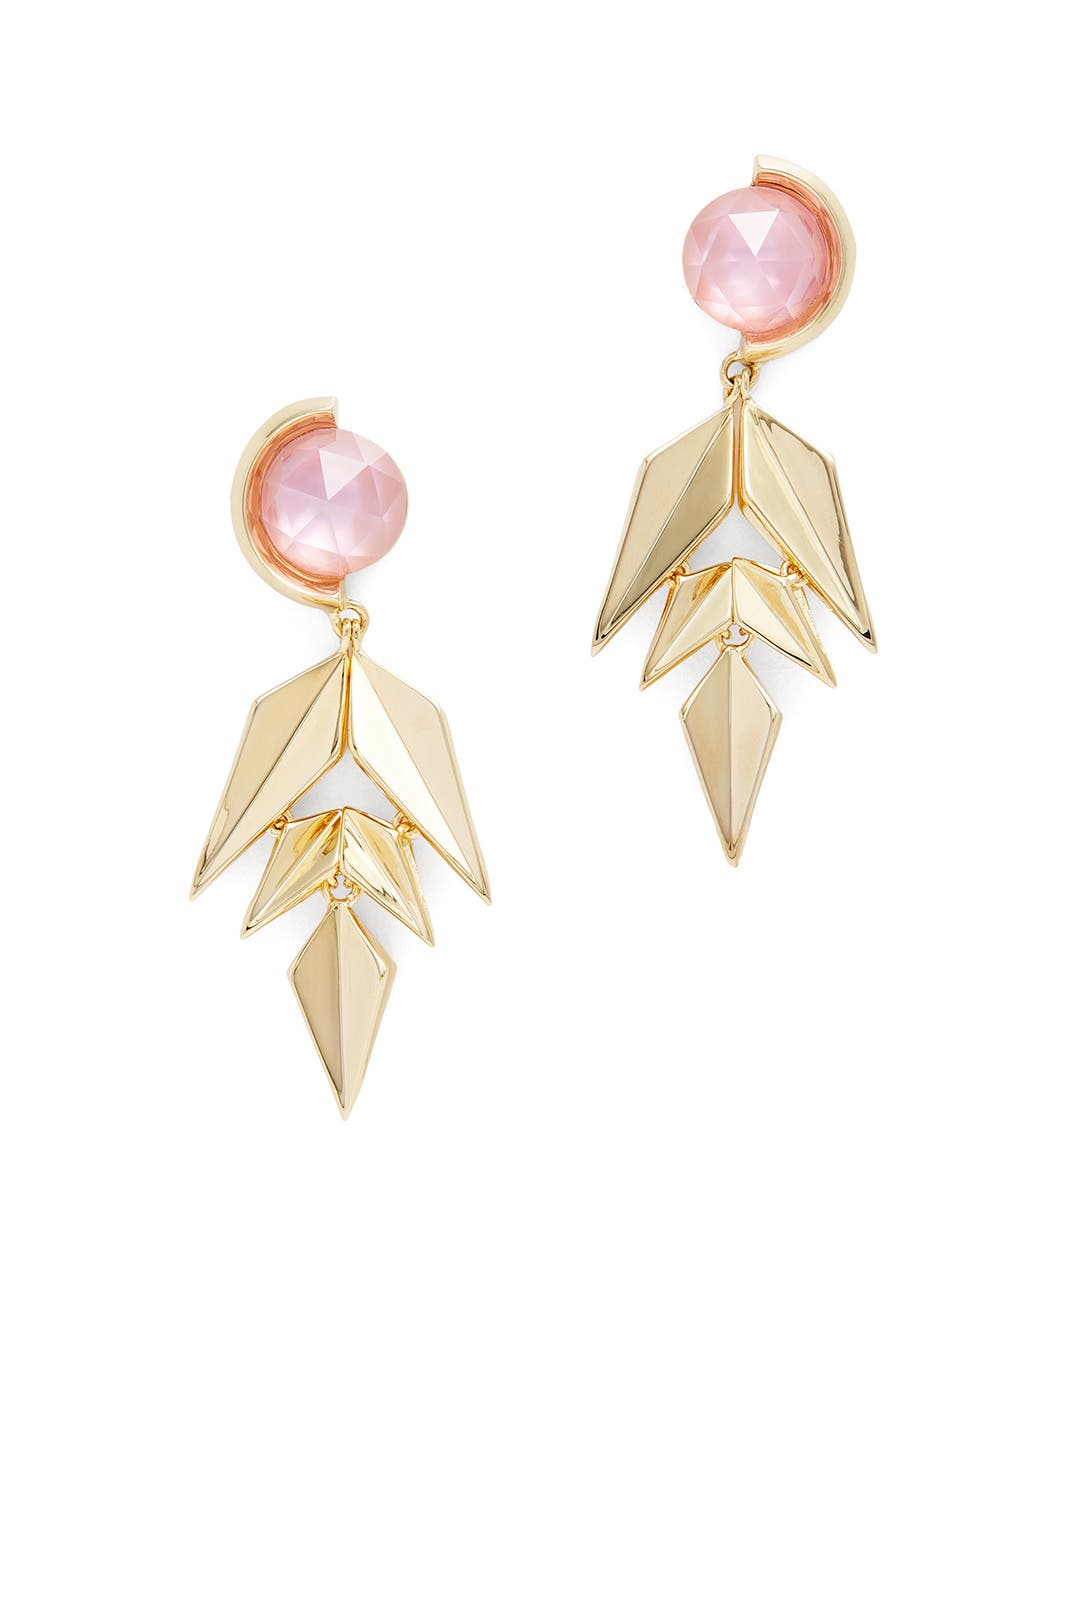 159b29c7e8323 Earrings - Sarah Magid Great selection and prices for Wedding Gifts ...